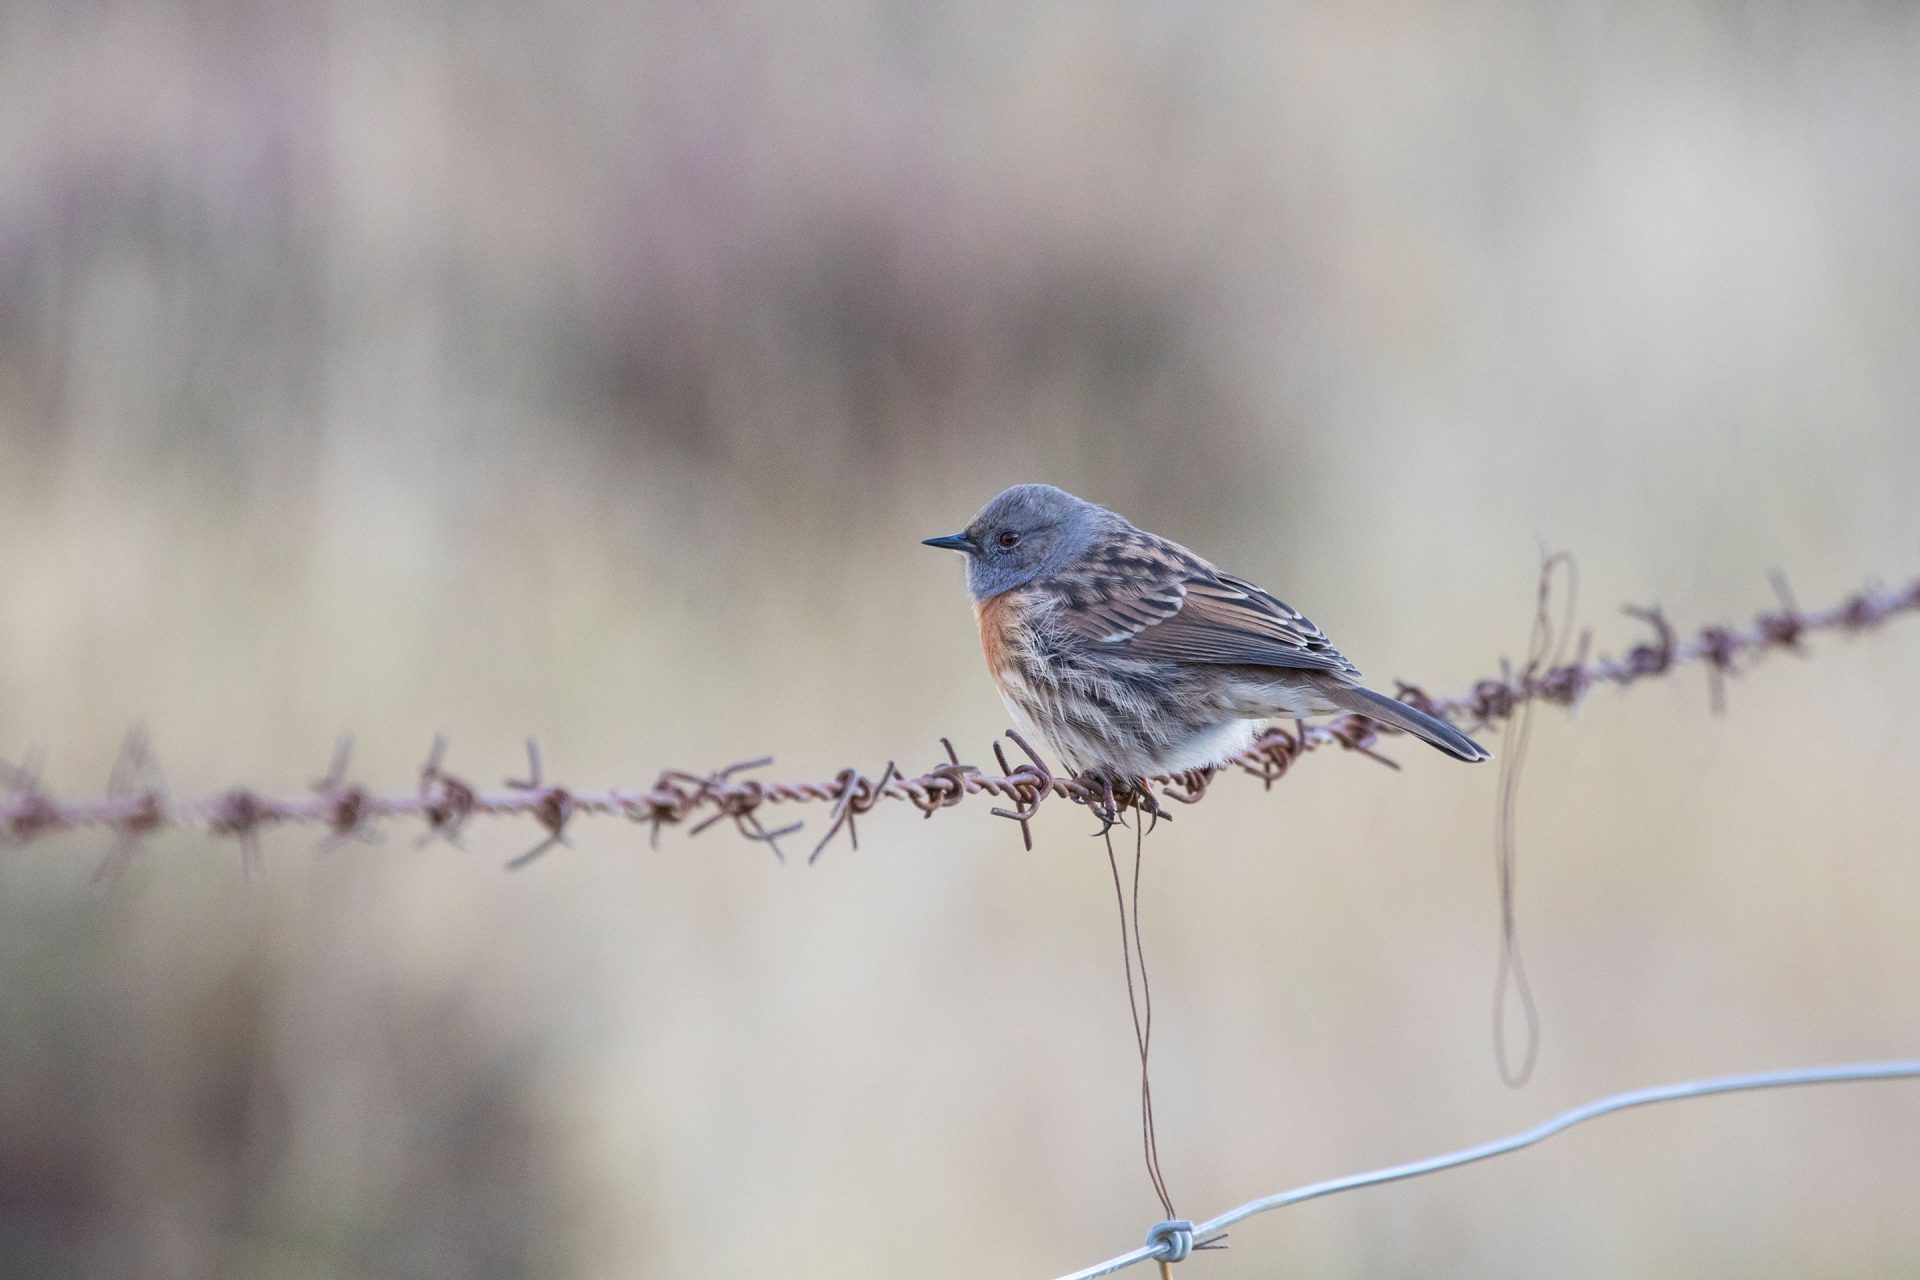 Robin accentor was very common near Qinghai Lake.